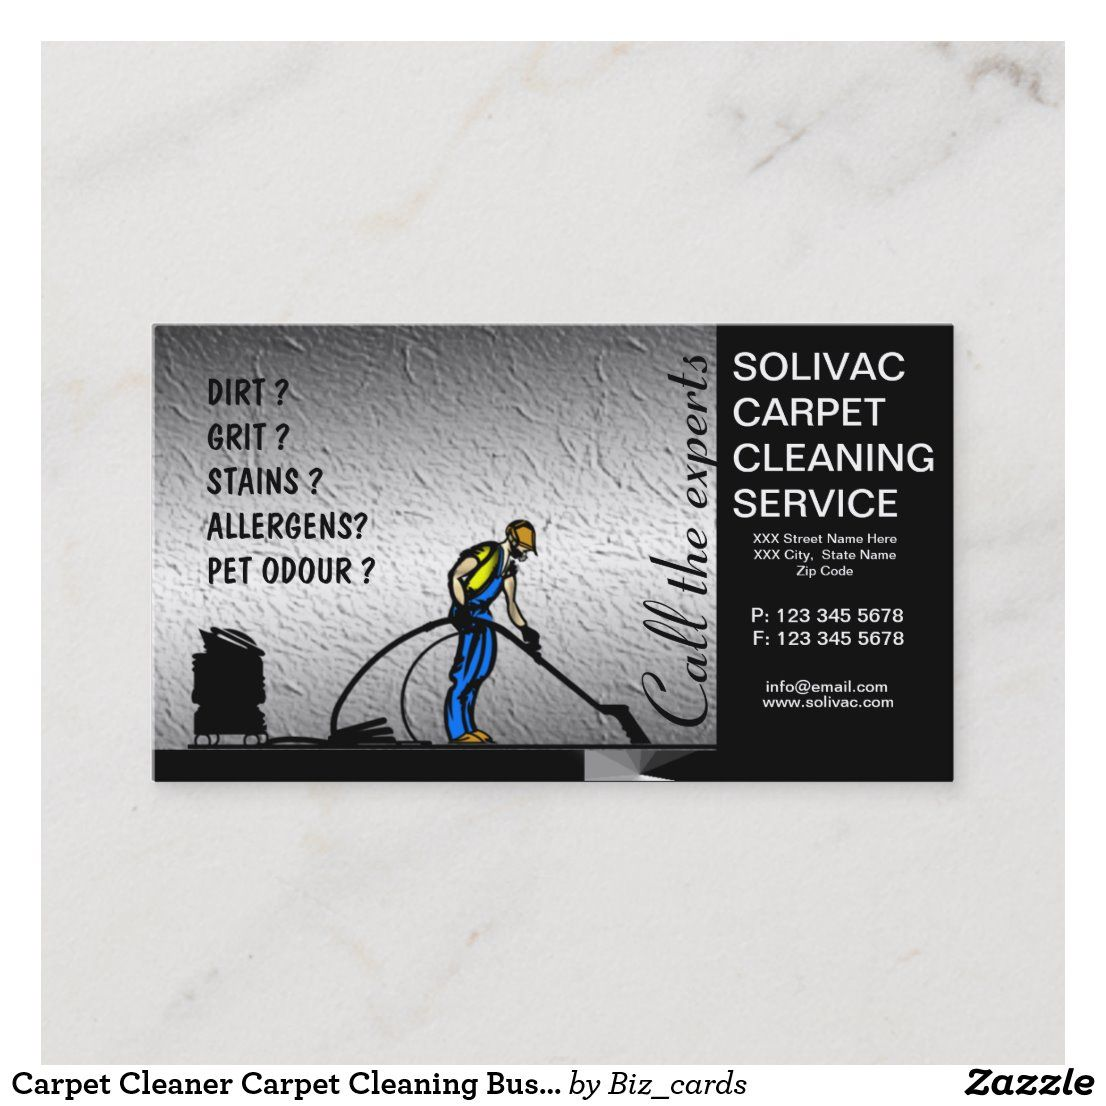 Carpet Cleaner Carpet Cleaning Business Card Zazzle Com Carpet Cleaning Business Cleaning Business Cards How To Clean Carpet